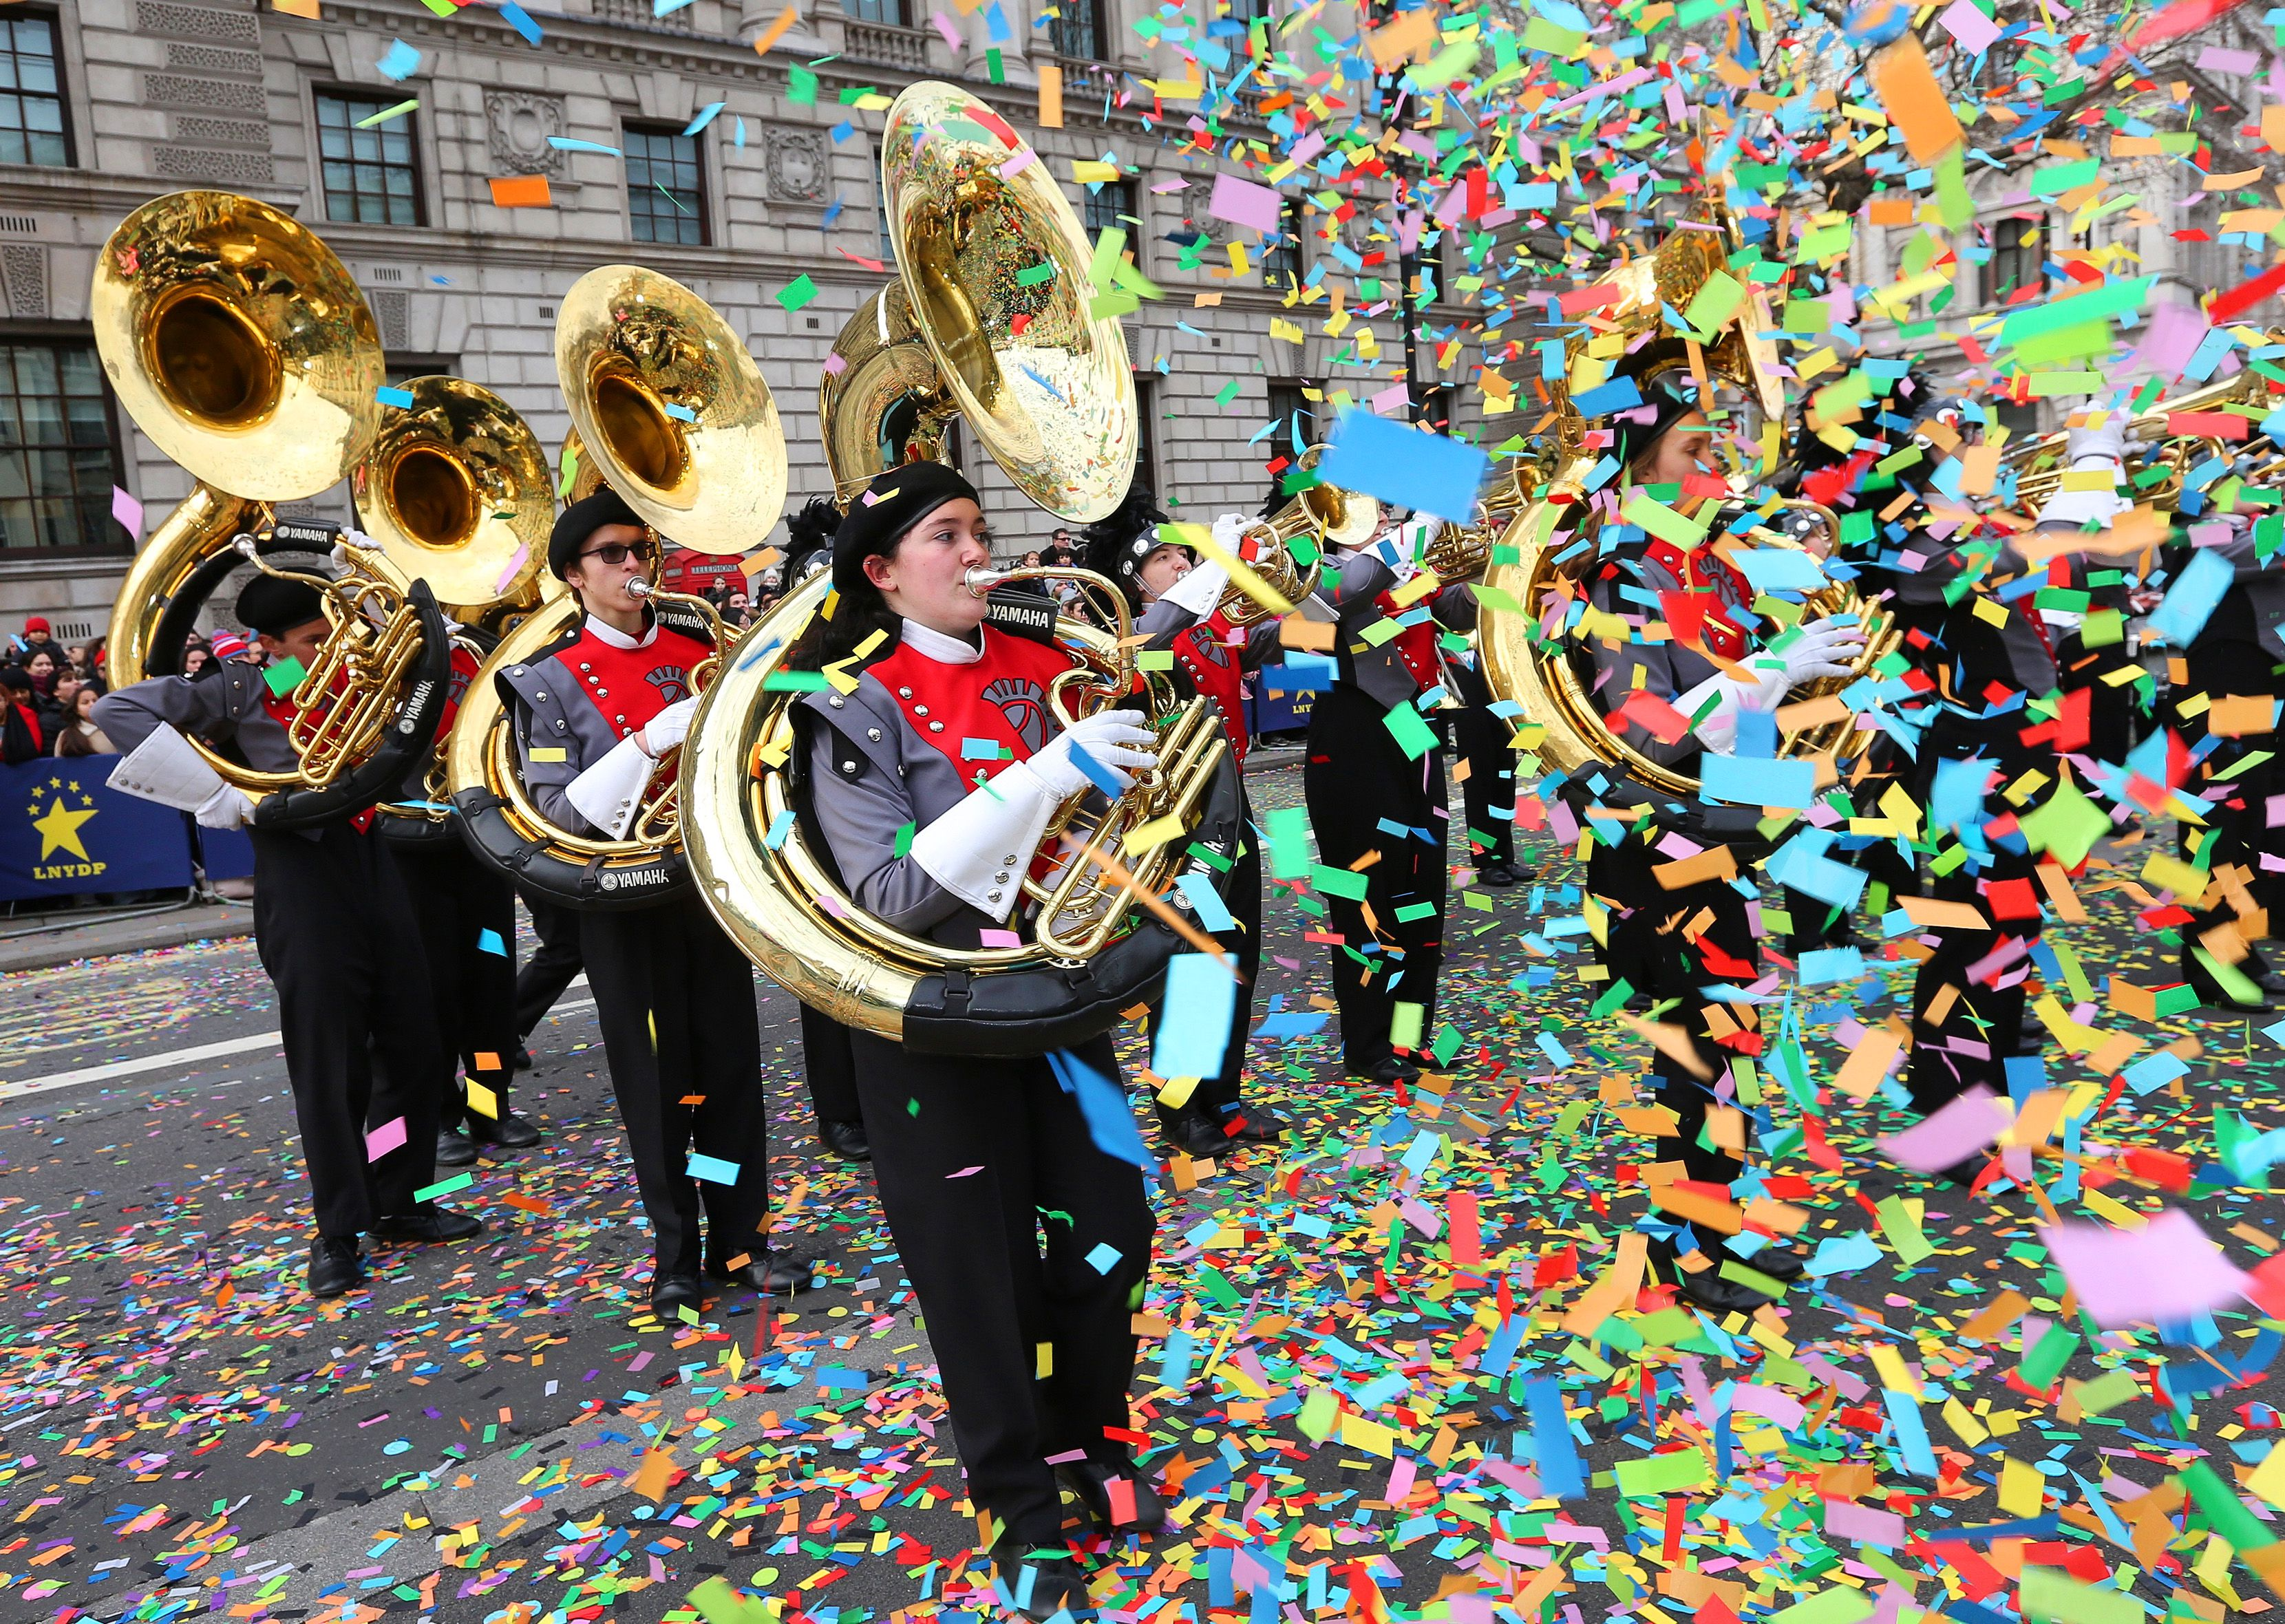 New Year's Day Parade London: All You Need to Know